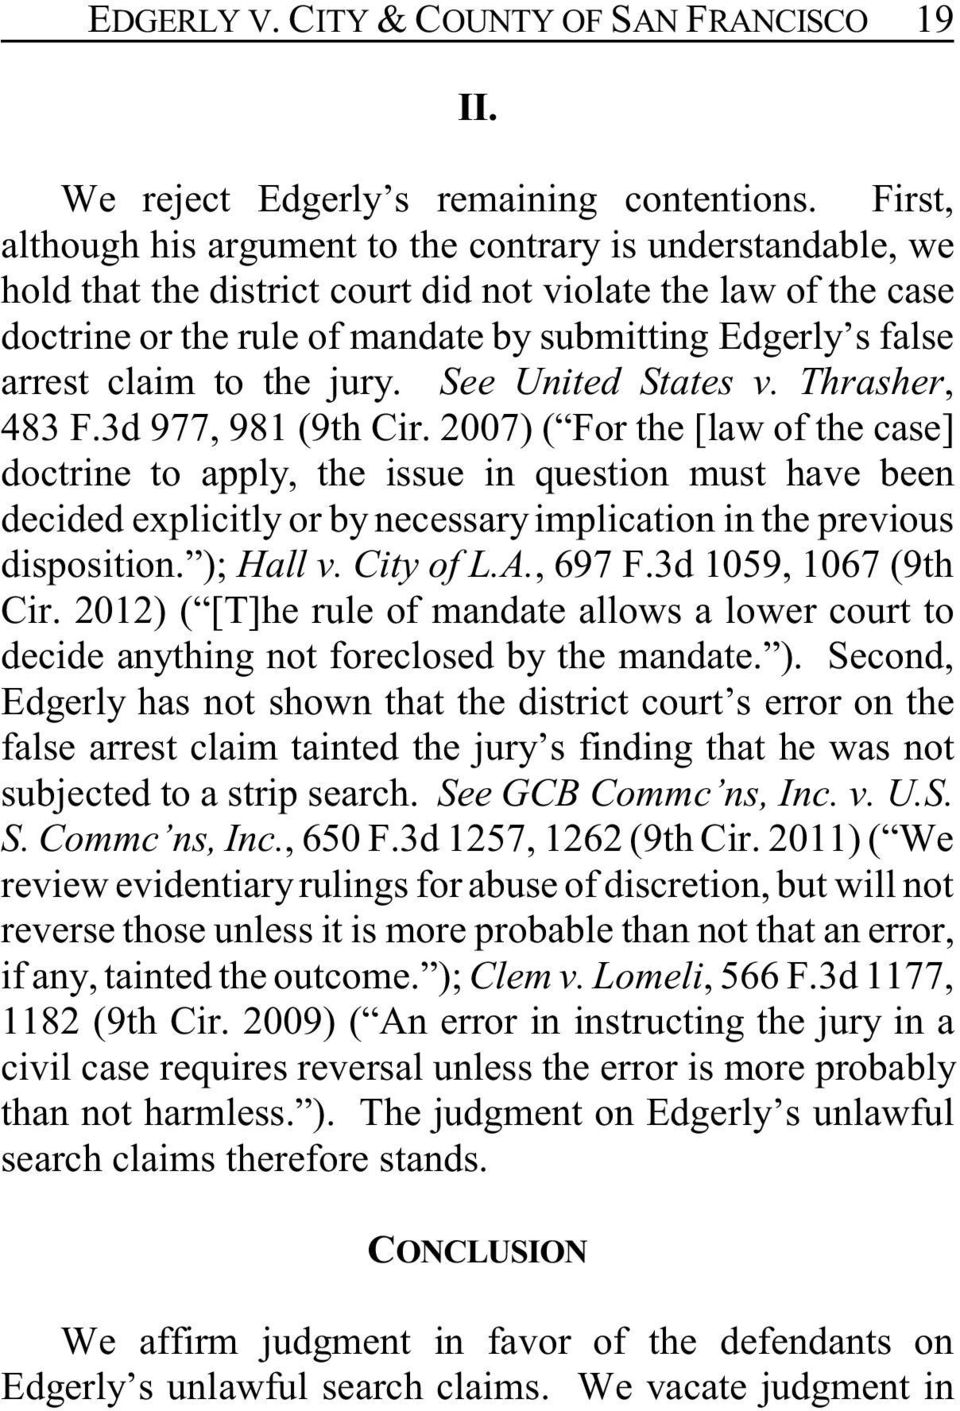 arrest claim to the jury. See United States v. Thrasher, 483 F.3d 977, 981 (9th Cir.